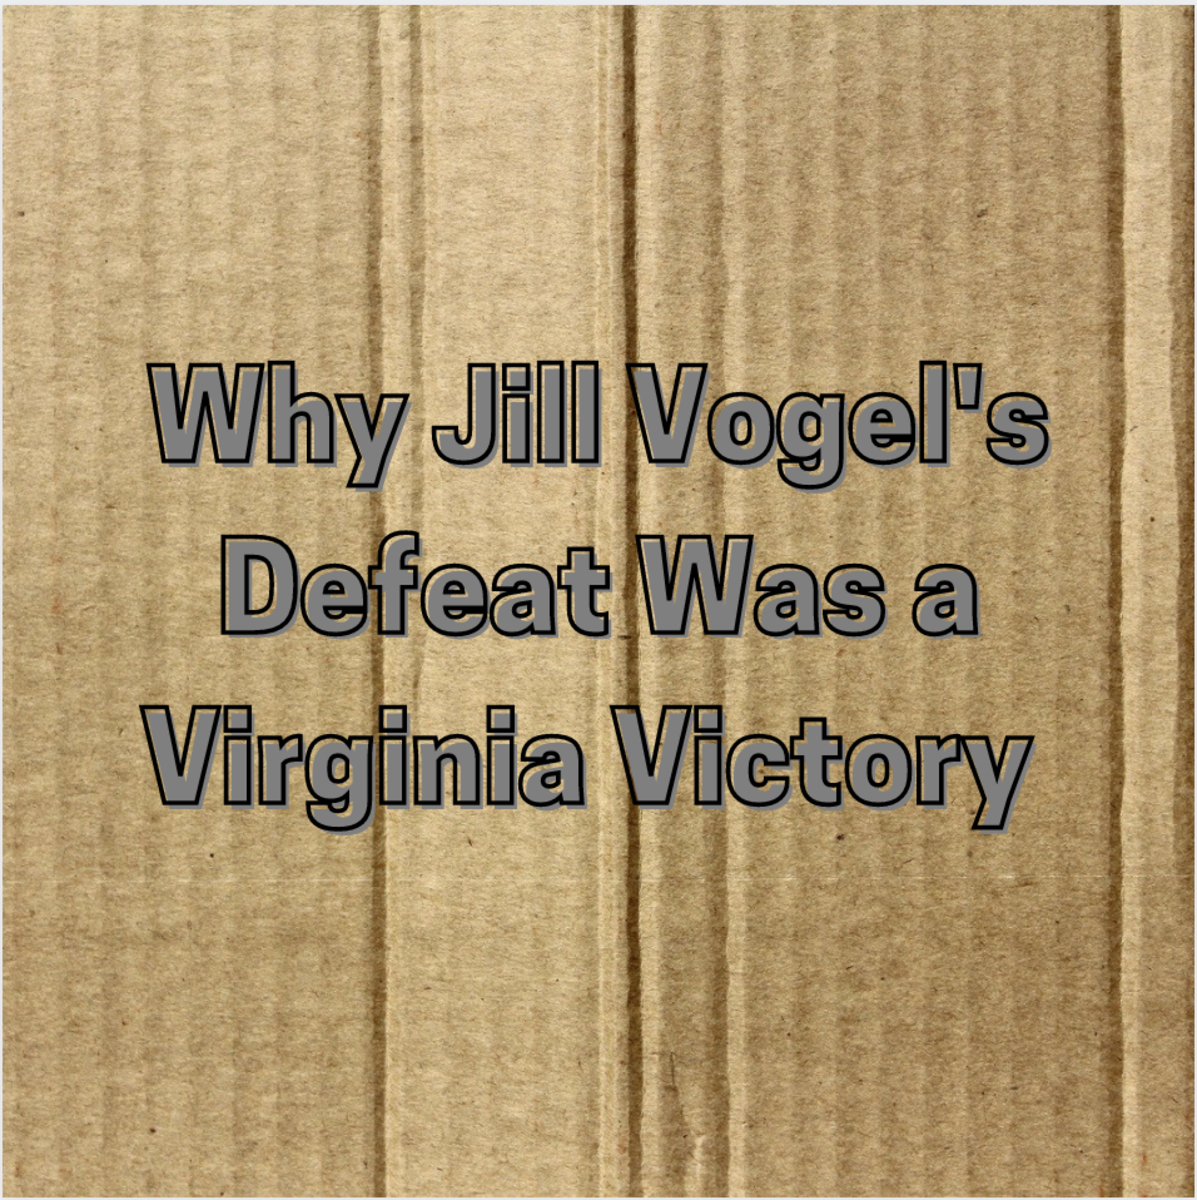 Jill Holtzman Vogel's Defeat Was Virginia's Victory